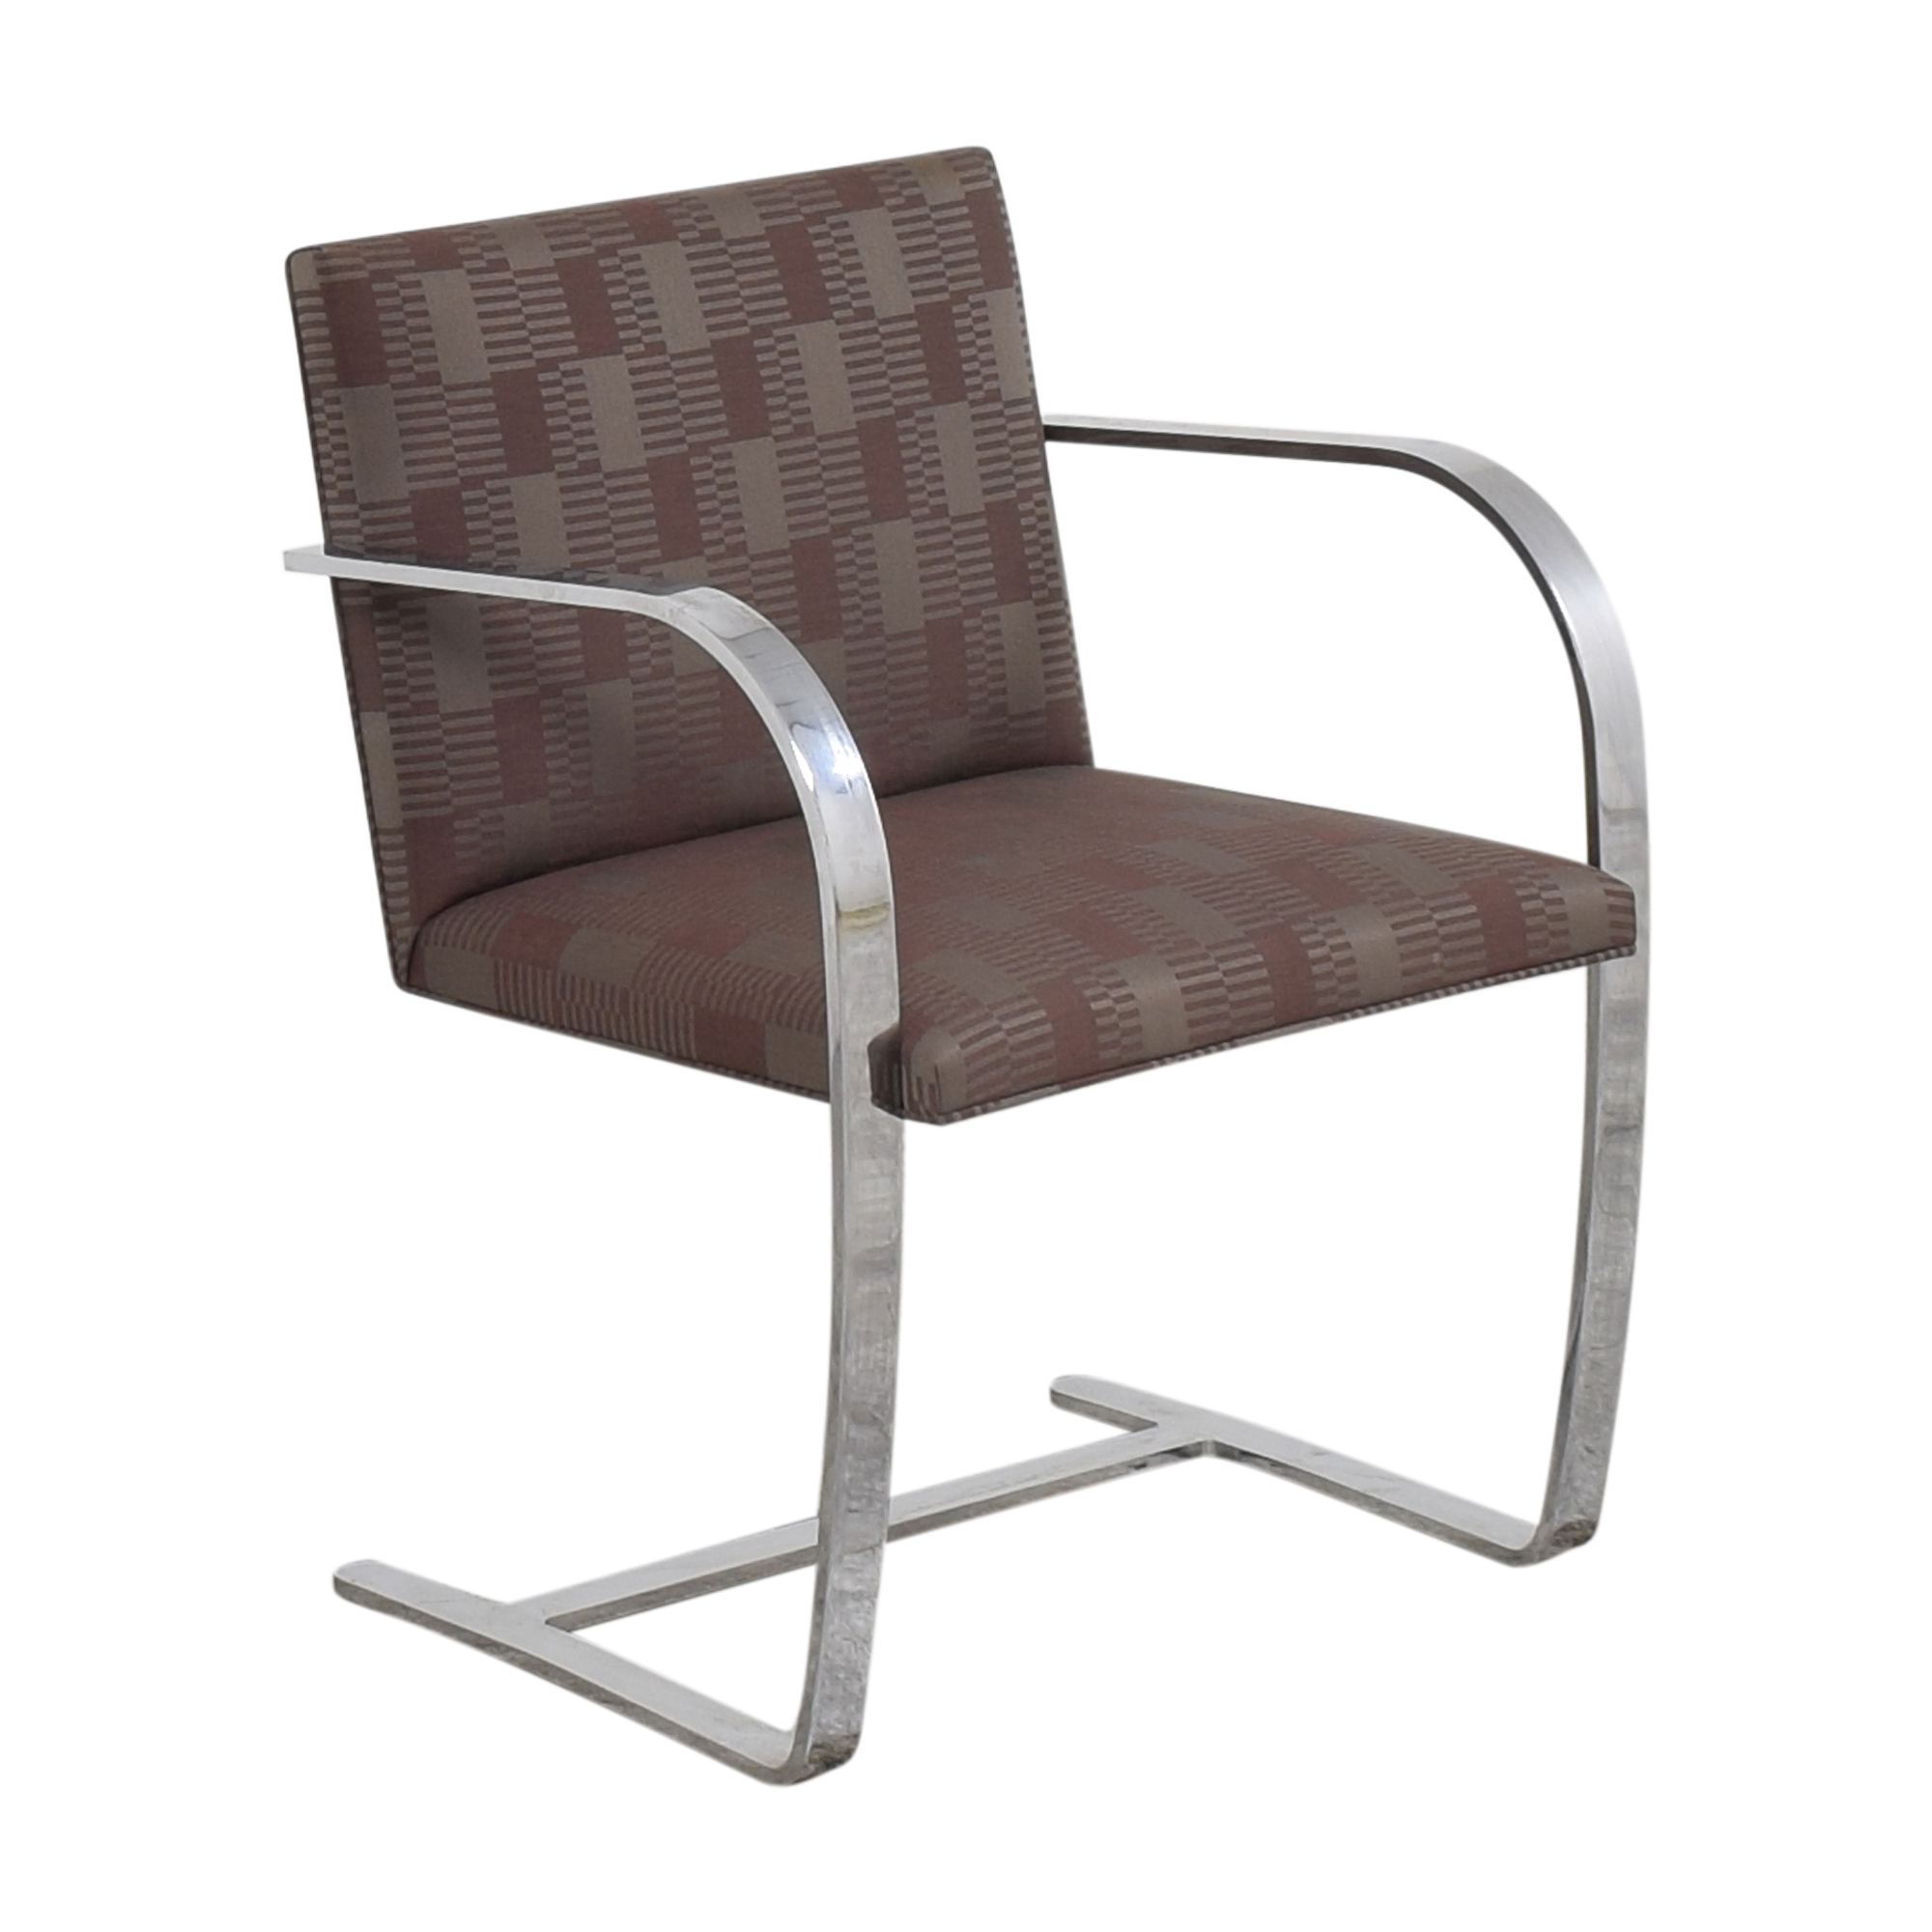 Flat Bar Brno-Style Chair / Accent Chairs